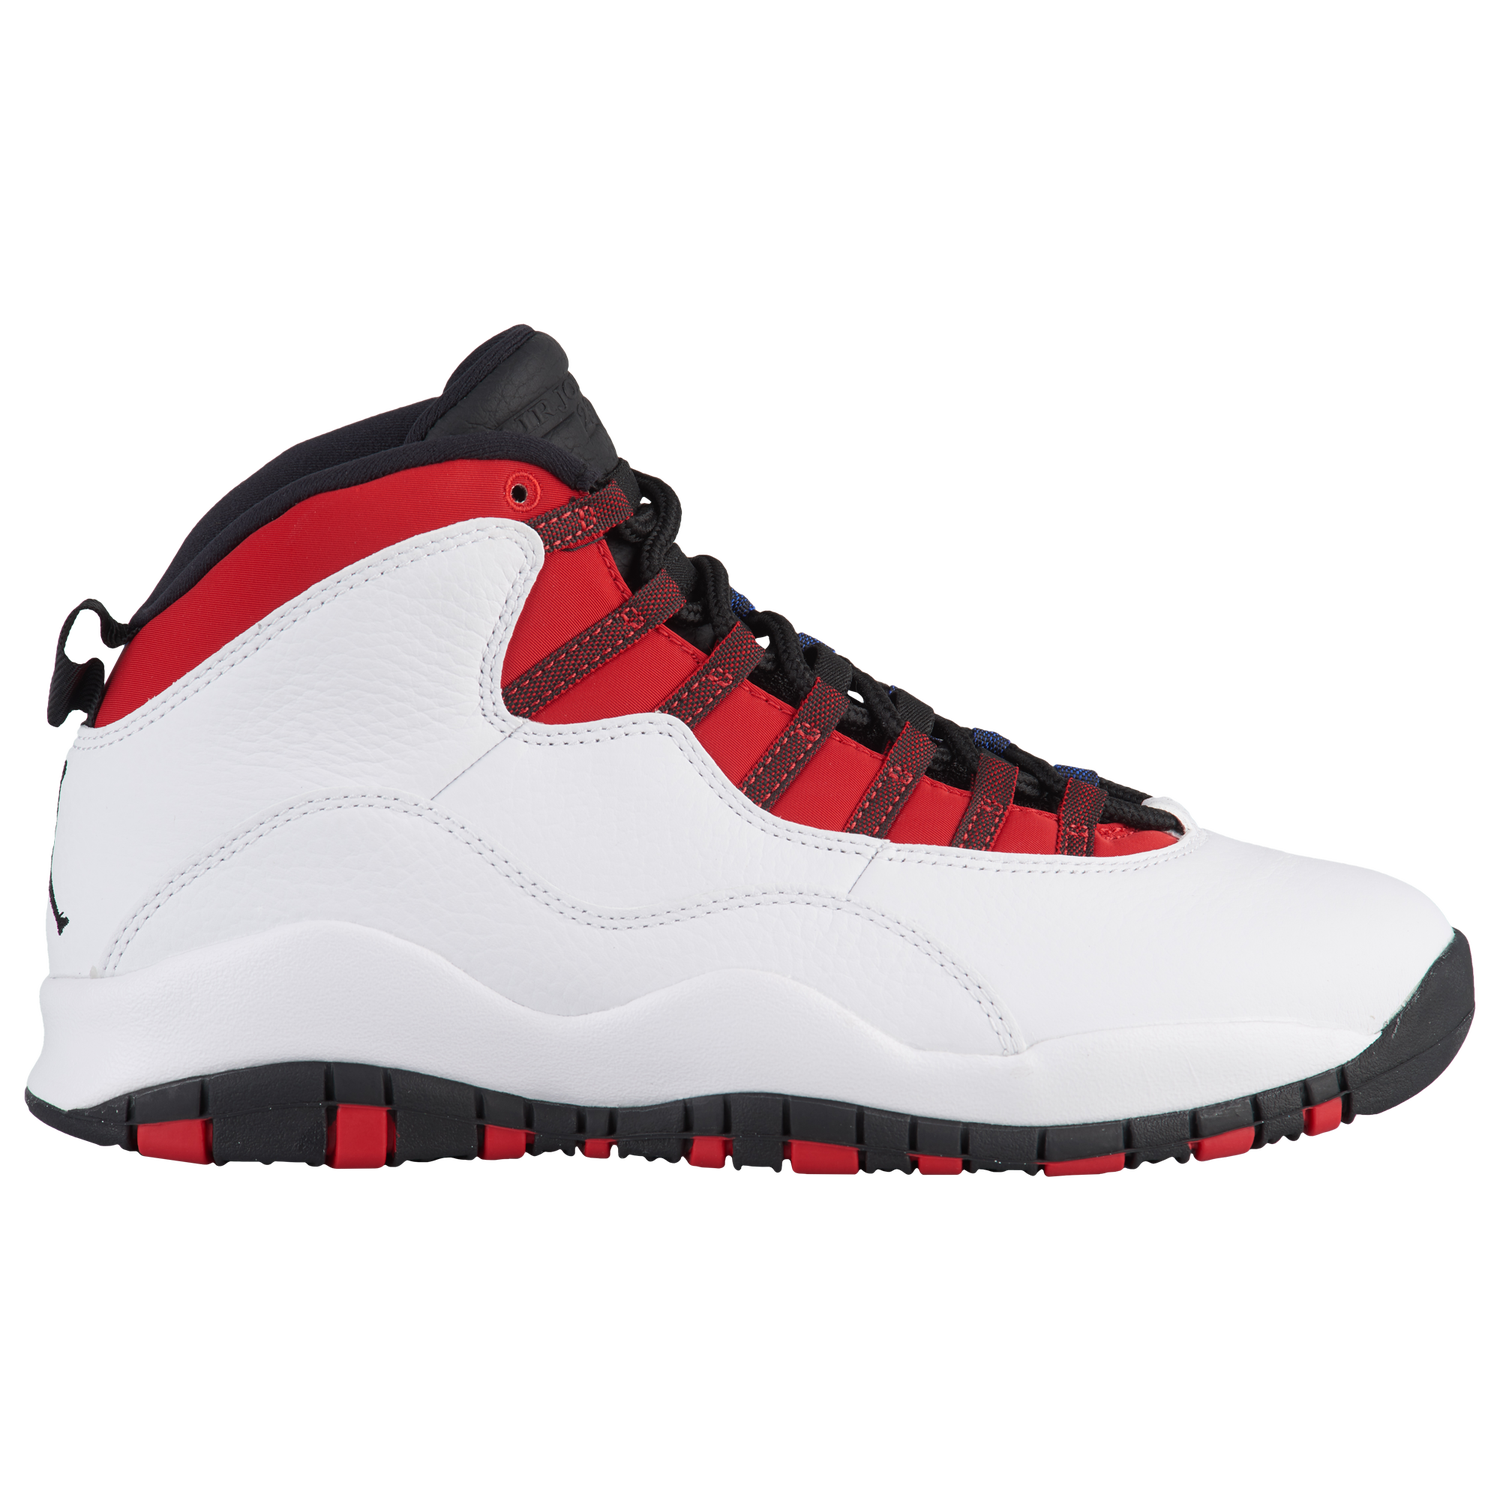 5fc83b4ef8b ... shoe smoke grey black university red white free shipping 0f4a2 bffd7;  discount jordan retro 10 mens 09cf8 5dee9